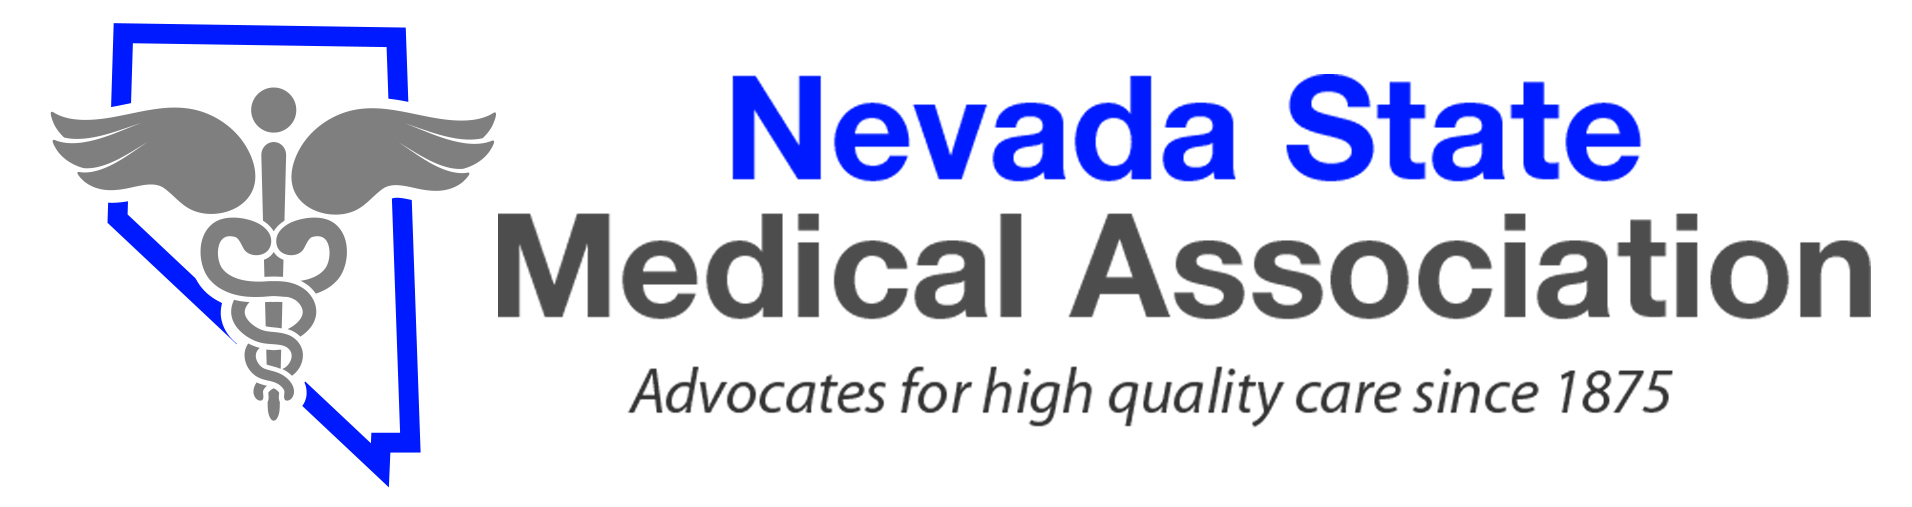 Nevada State Medical Association